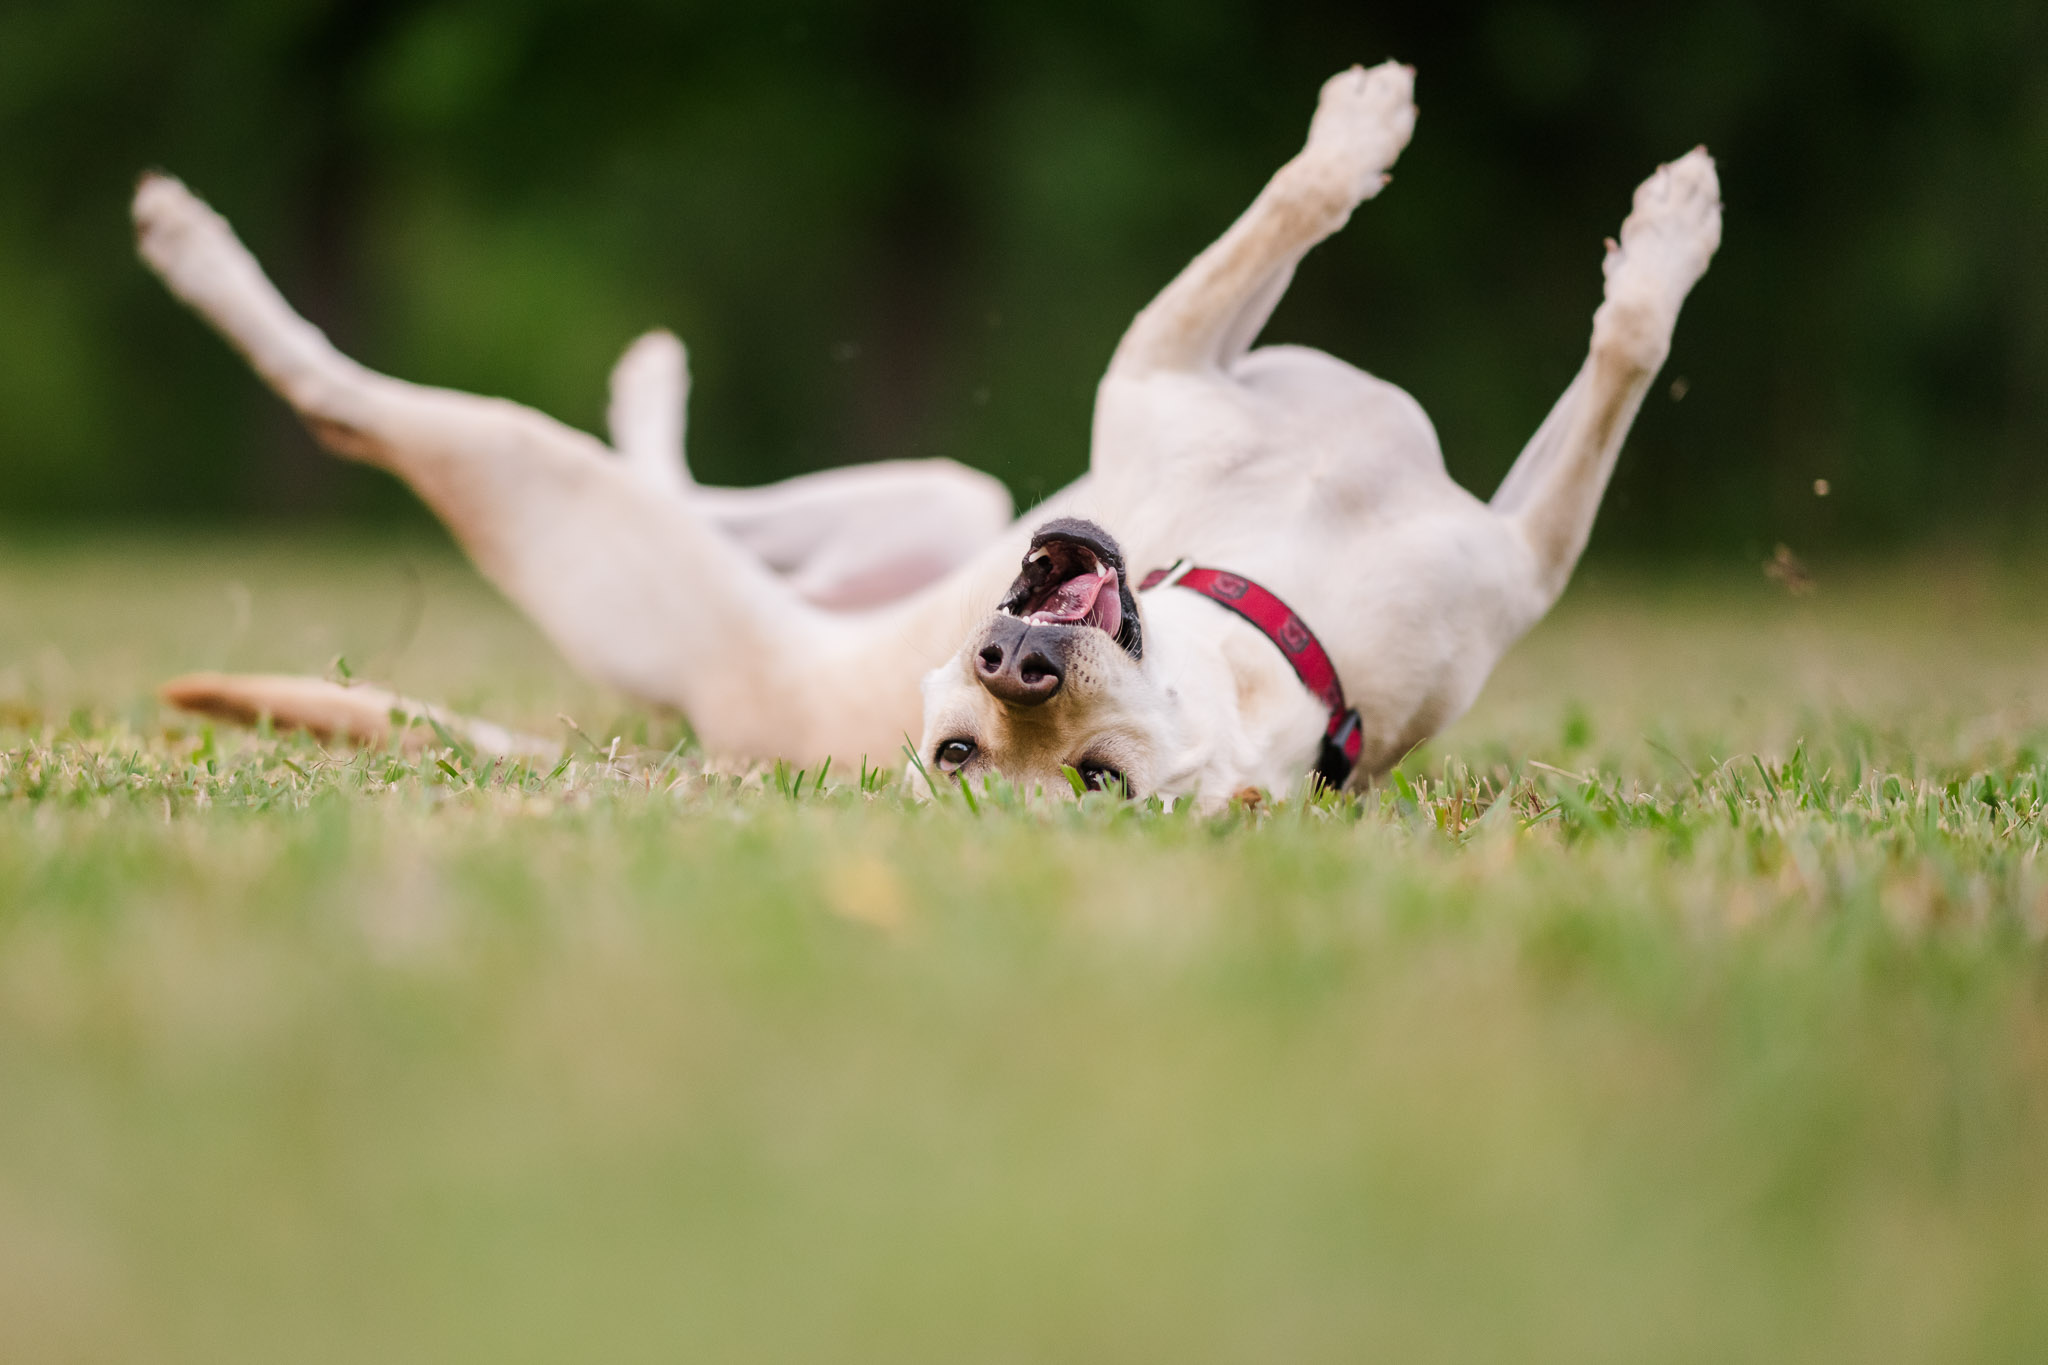 Capturing photos of your dogs doing their best tricks is a fun addition to any dog photography session.